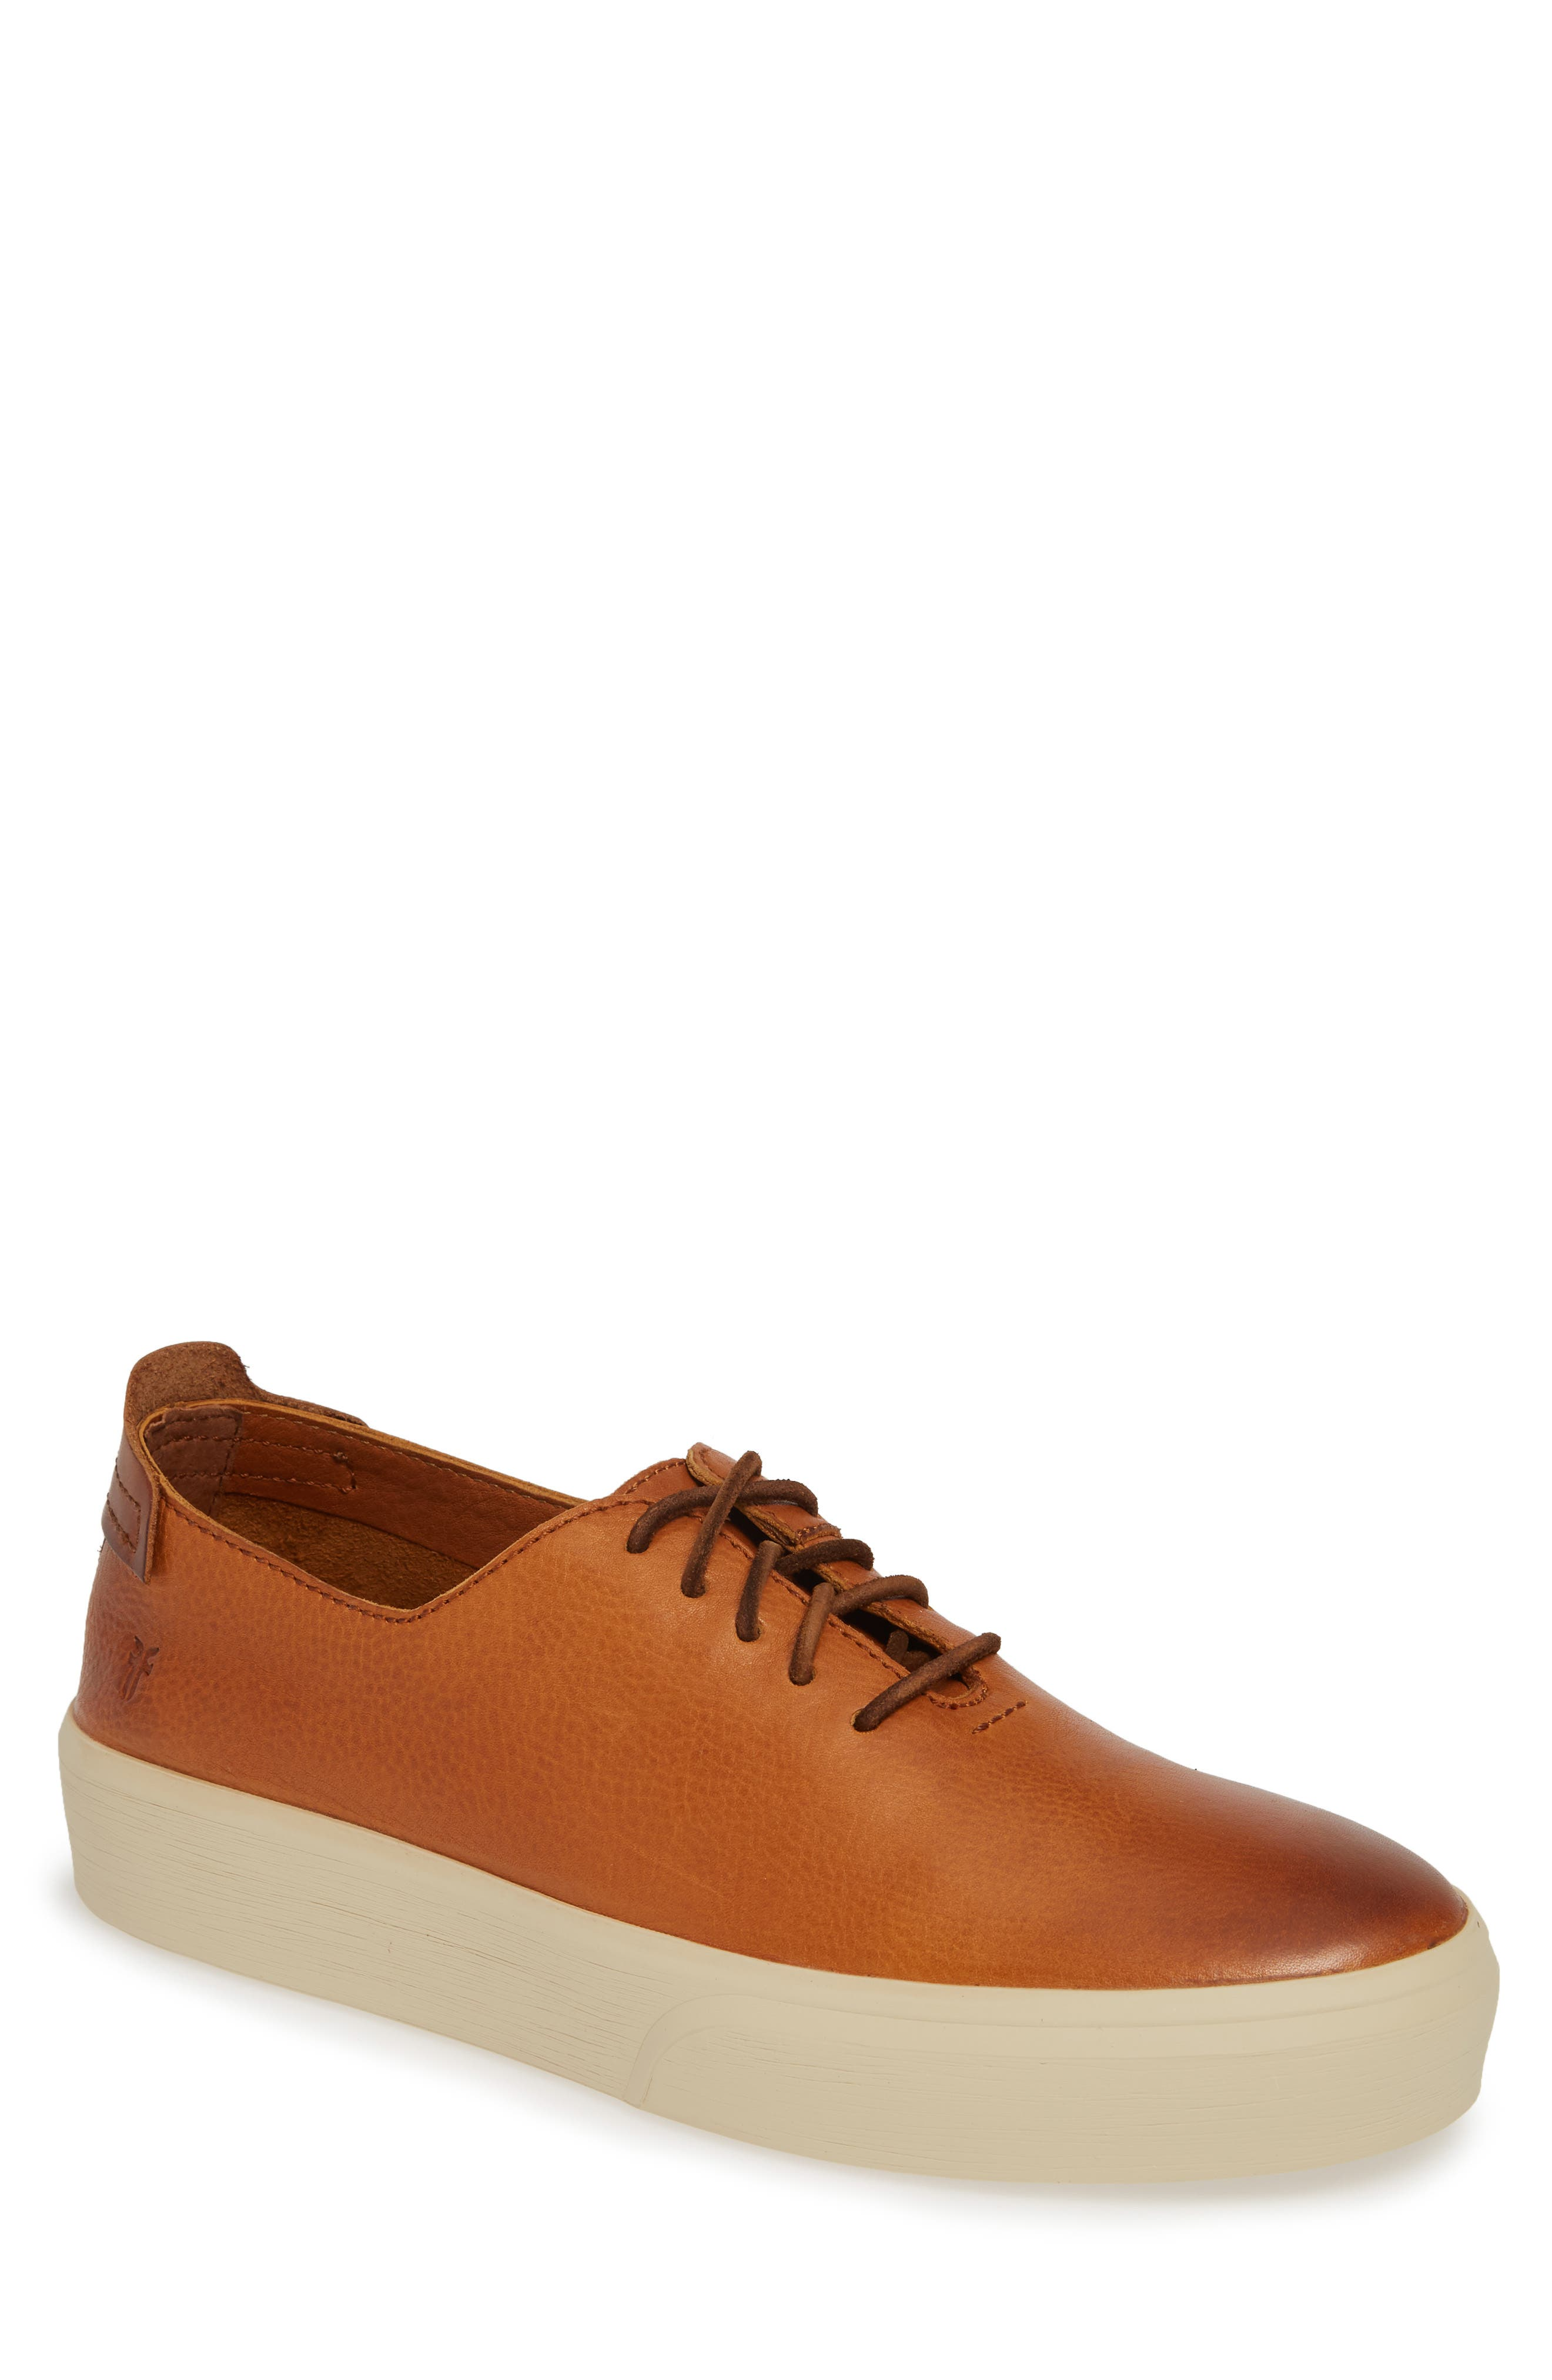 FRYE,                             Beacon Sneaker,                             Main thumbnail 1, color,                             CARAMEL LEATHER